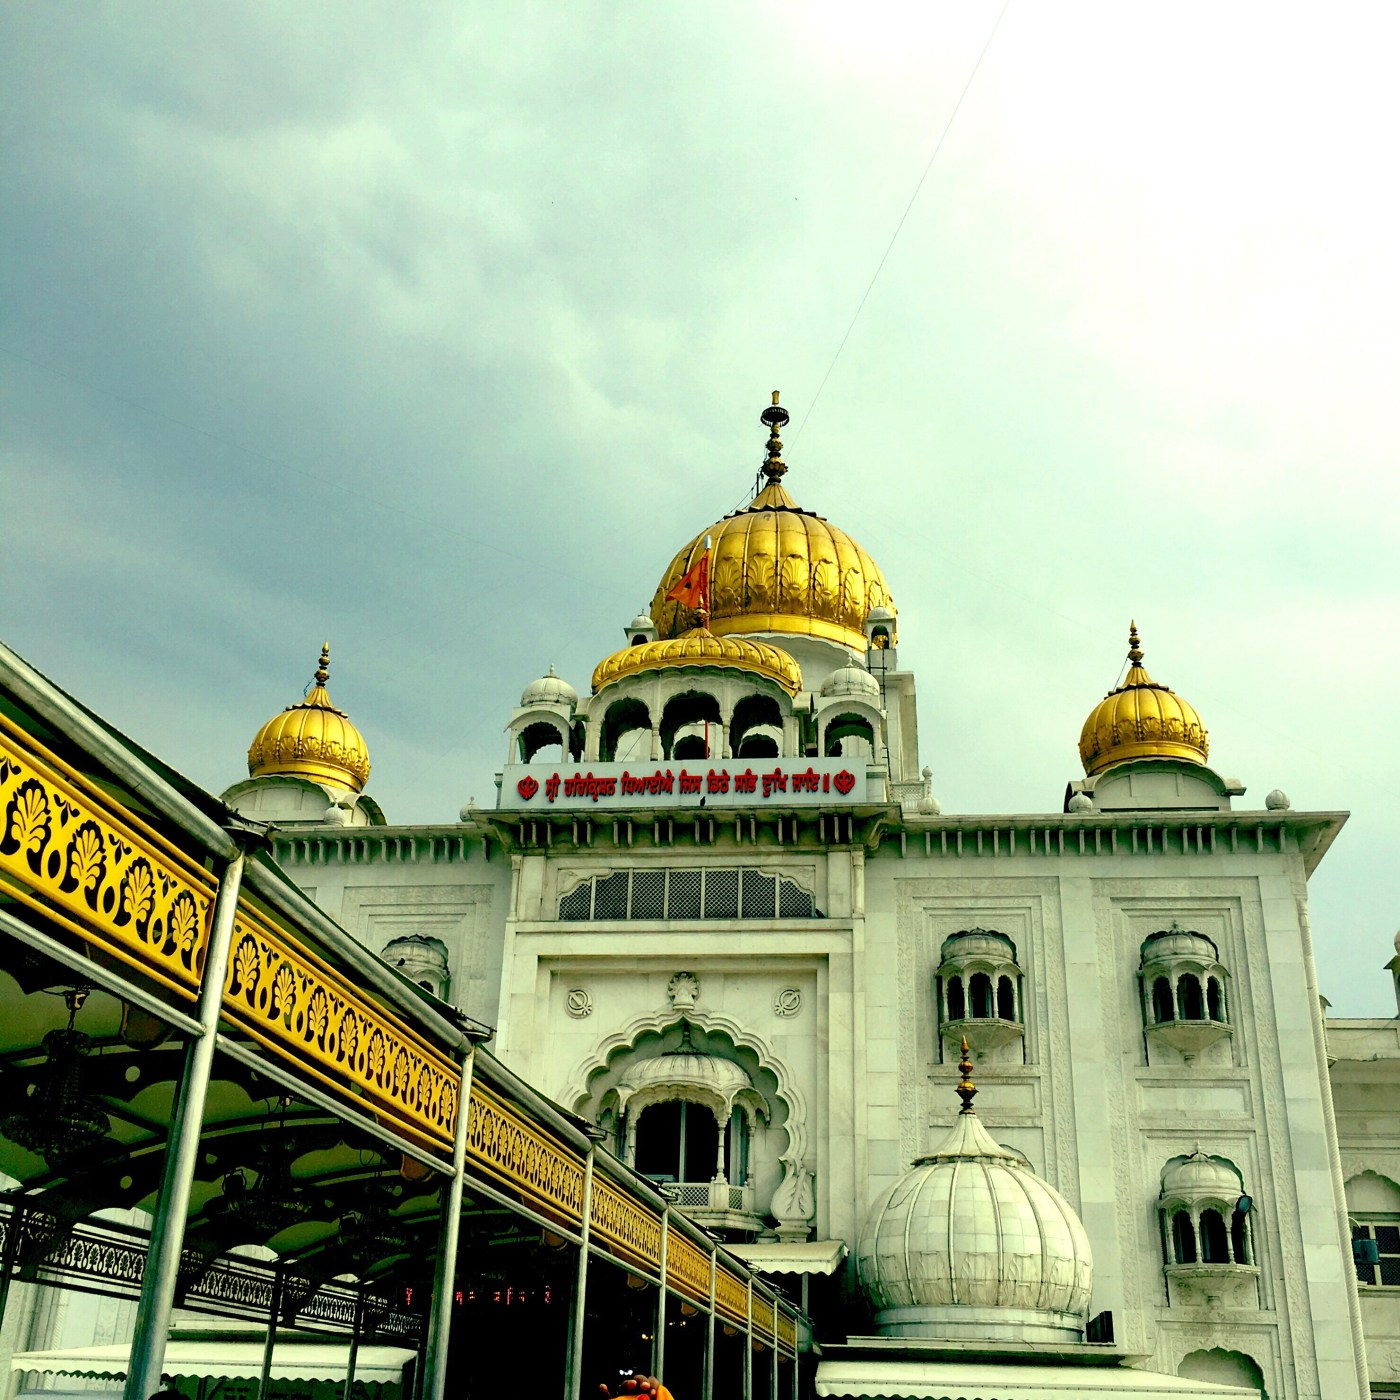 Gurudwara Bangla Sahib Delhi, India | Places to see in Delhi || Things to do in Delhi || Travelling || Travel || #thewanderingcore #travel #asia #india